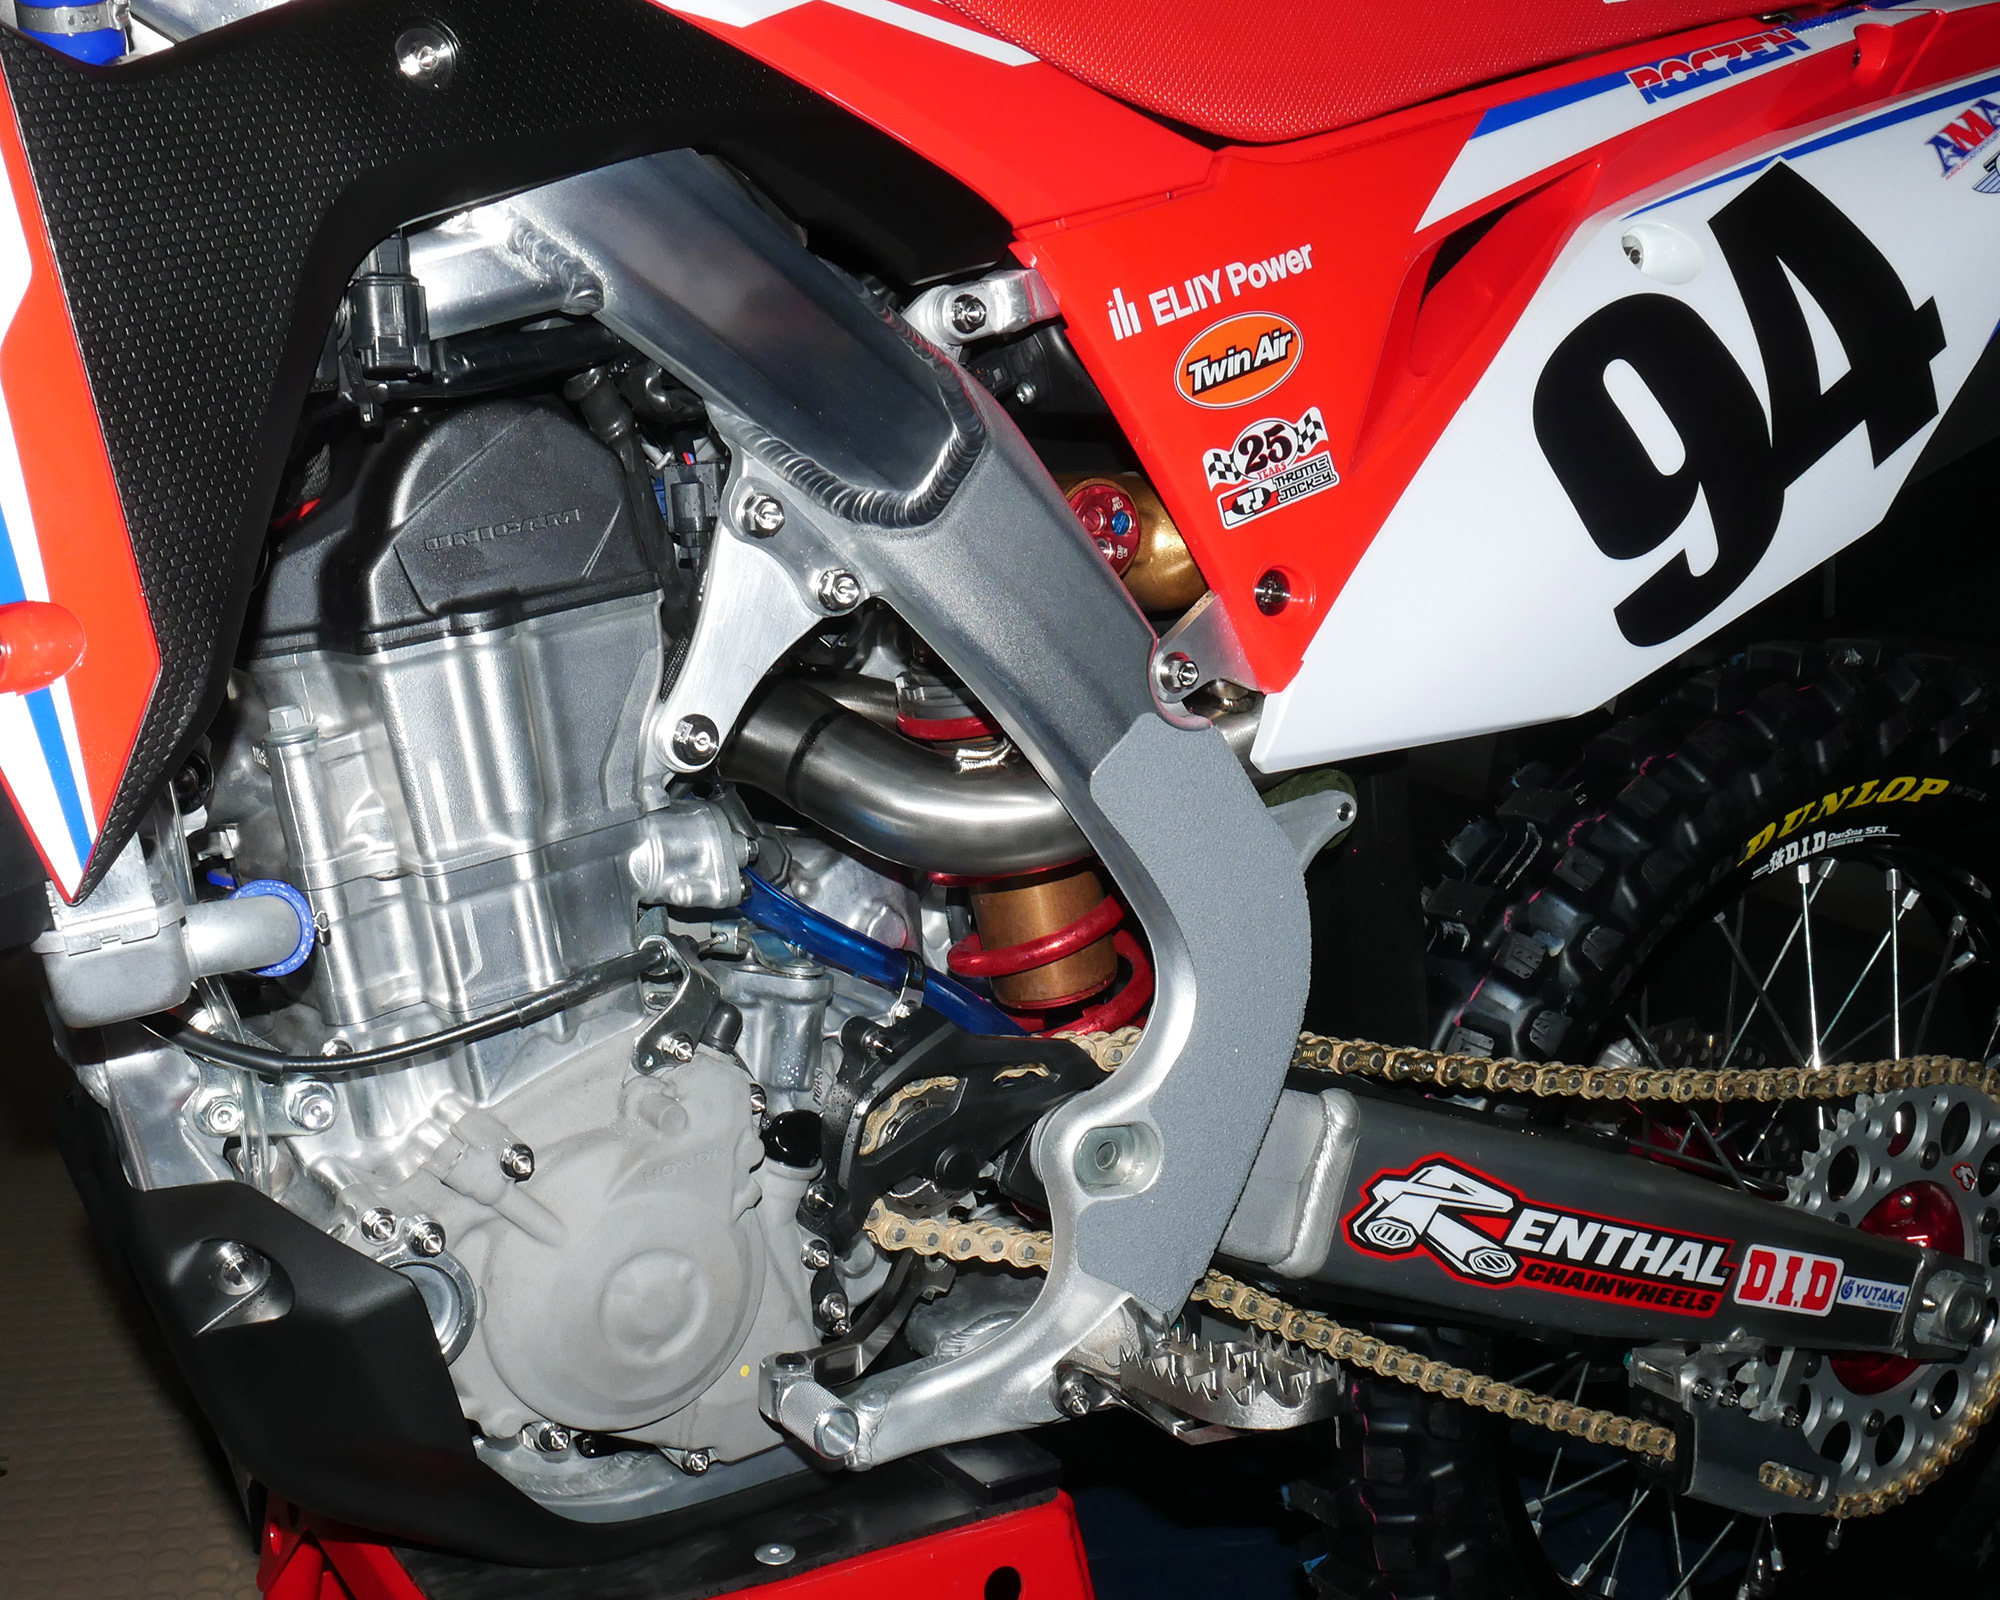 roczen-bike-left-1010517.jpg